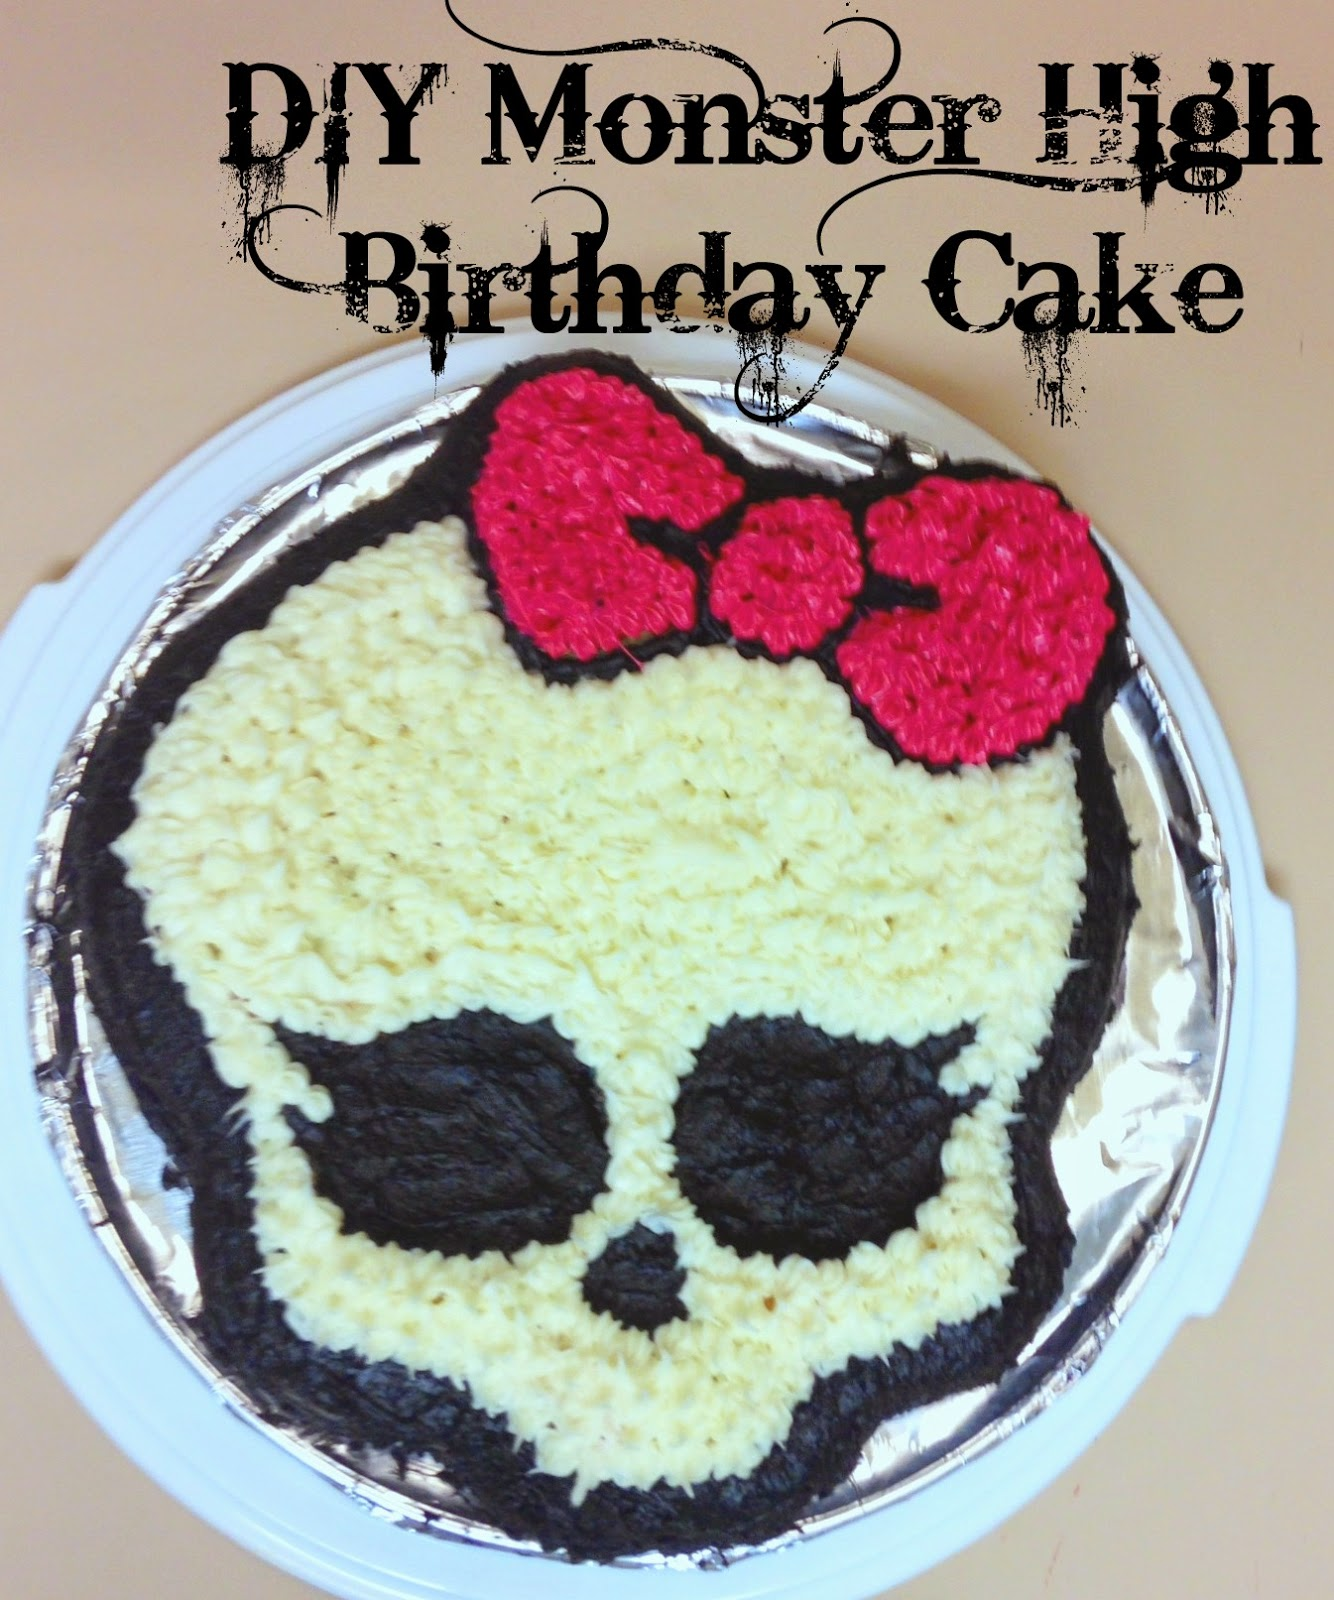 Wondrous Diy Monster High Birthday Cake Outnumbered 3 To 1 Funny Birthday Cards Online Inifofree Goldxyz